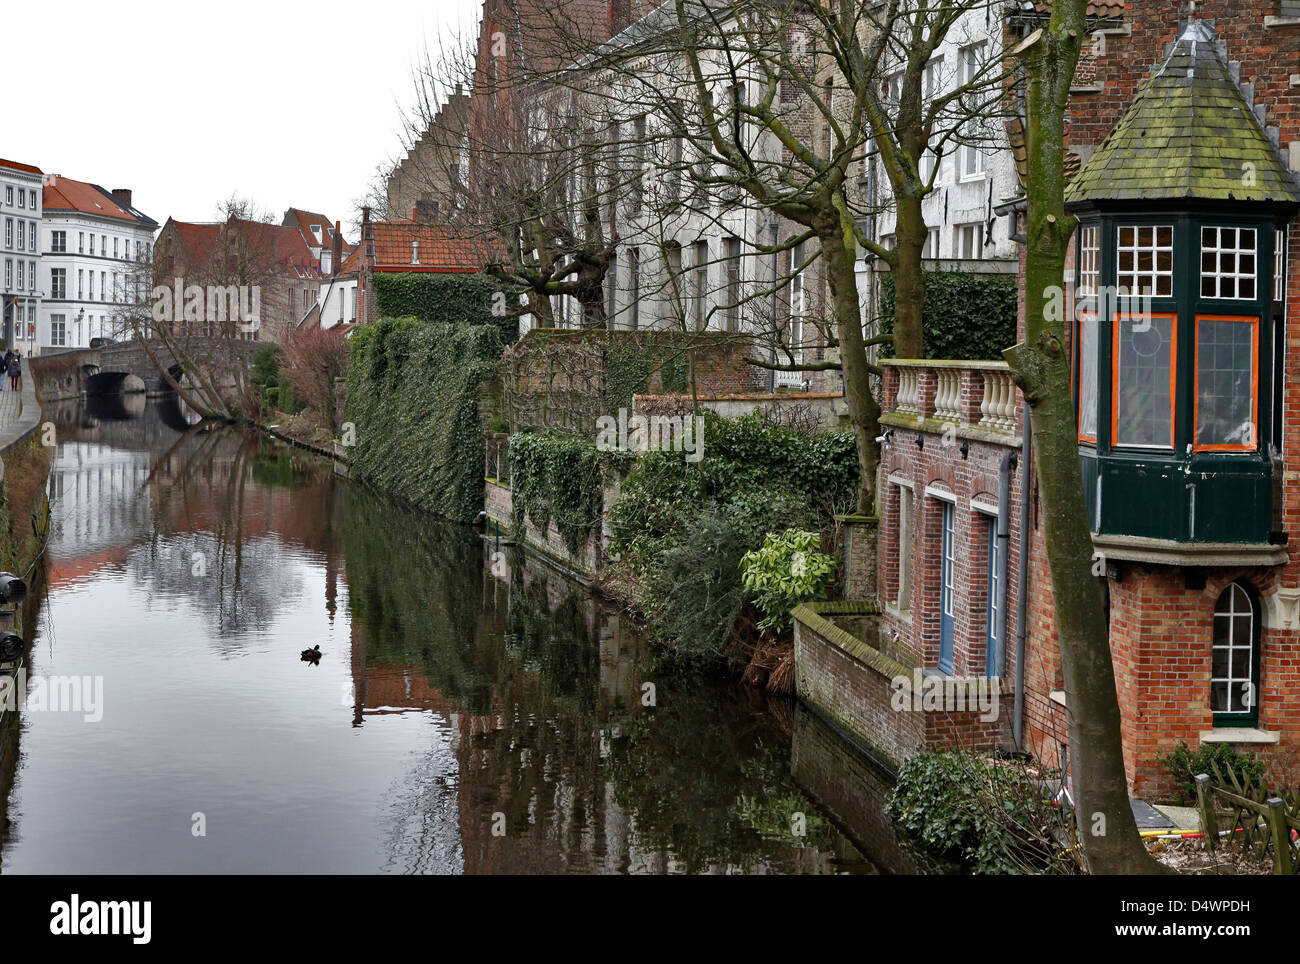 houses on canal in brugge, belgium - Stock Image